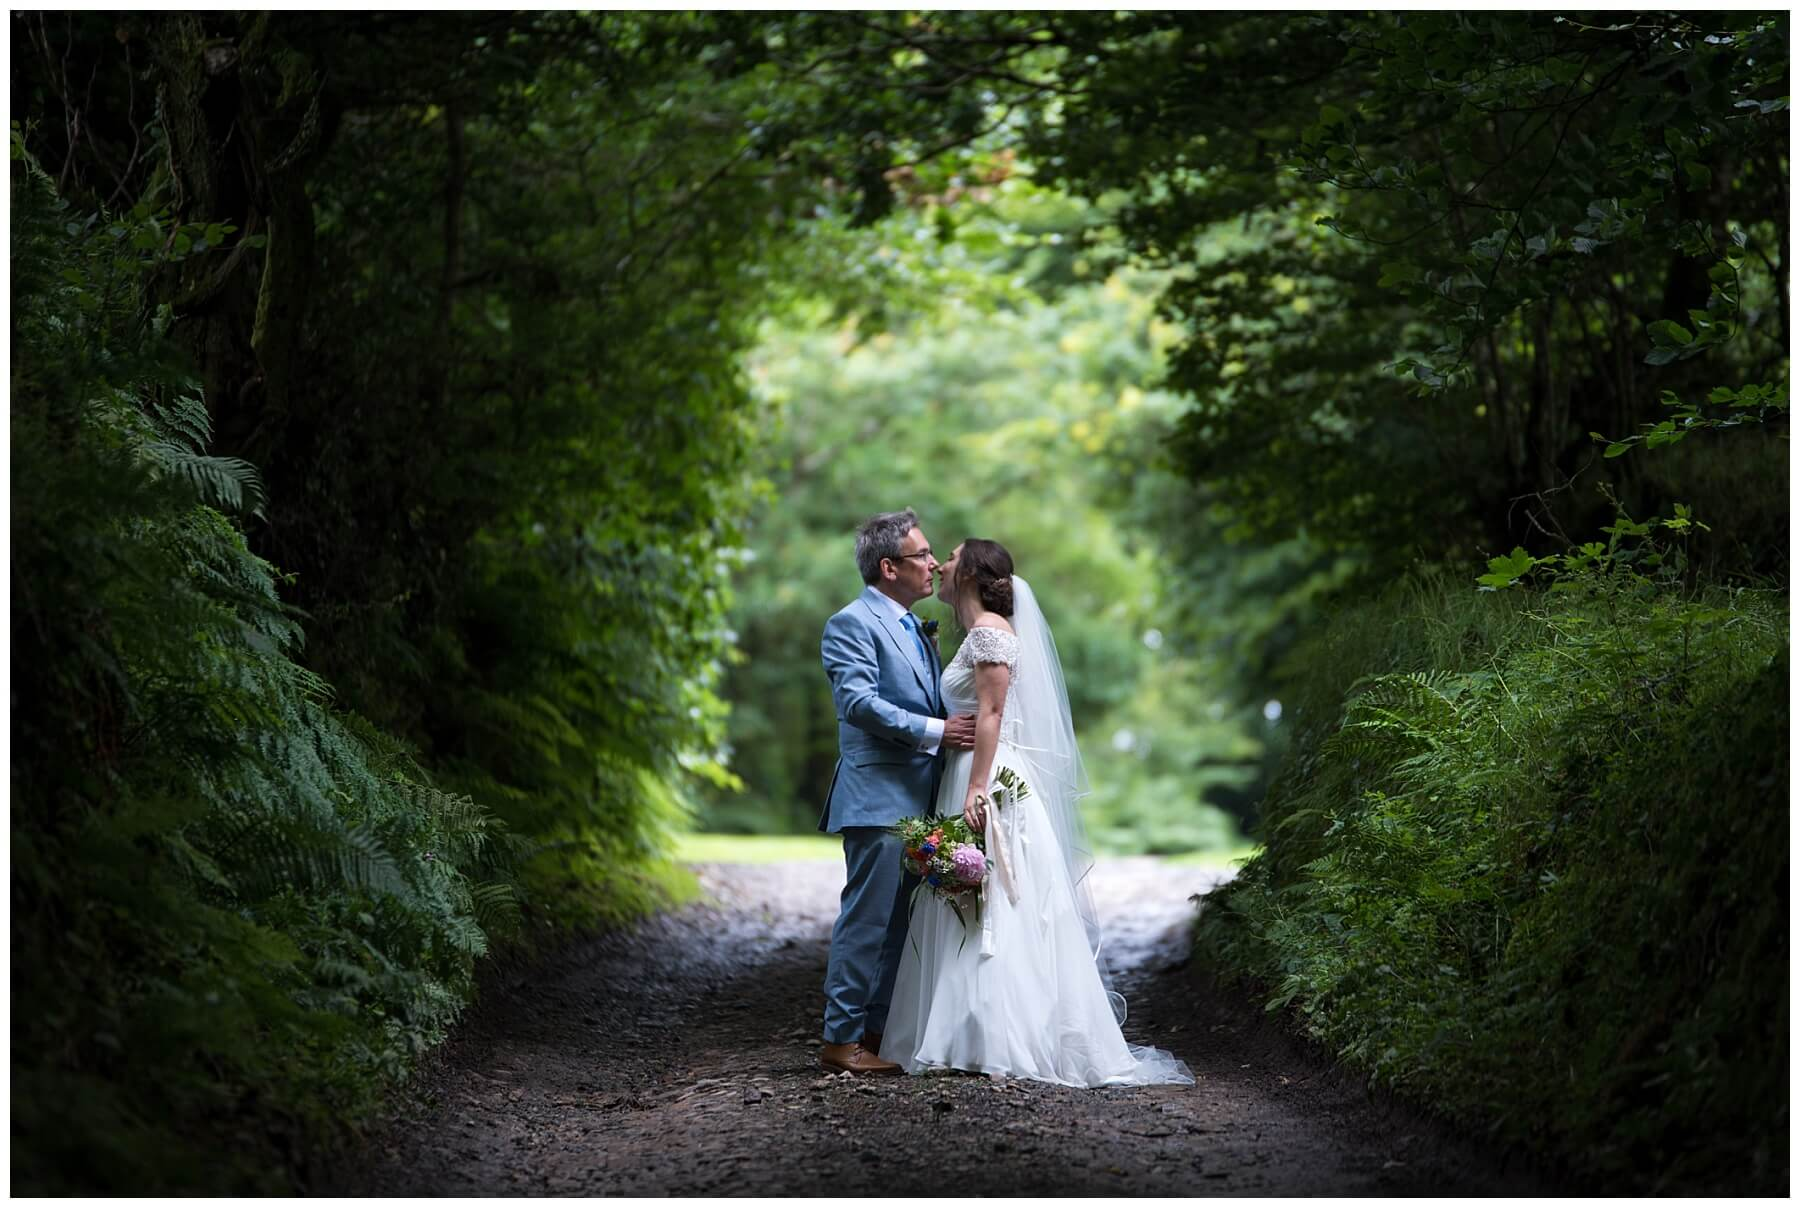 Cornwall Wedding Photographer – Trevenna Barn Wedding